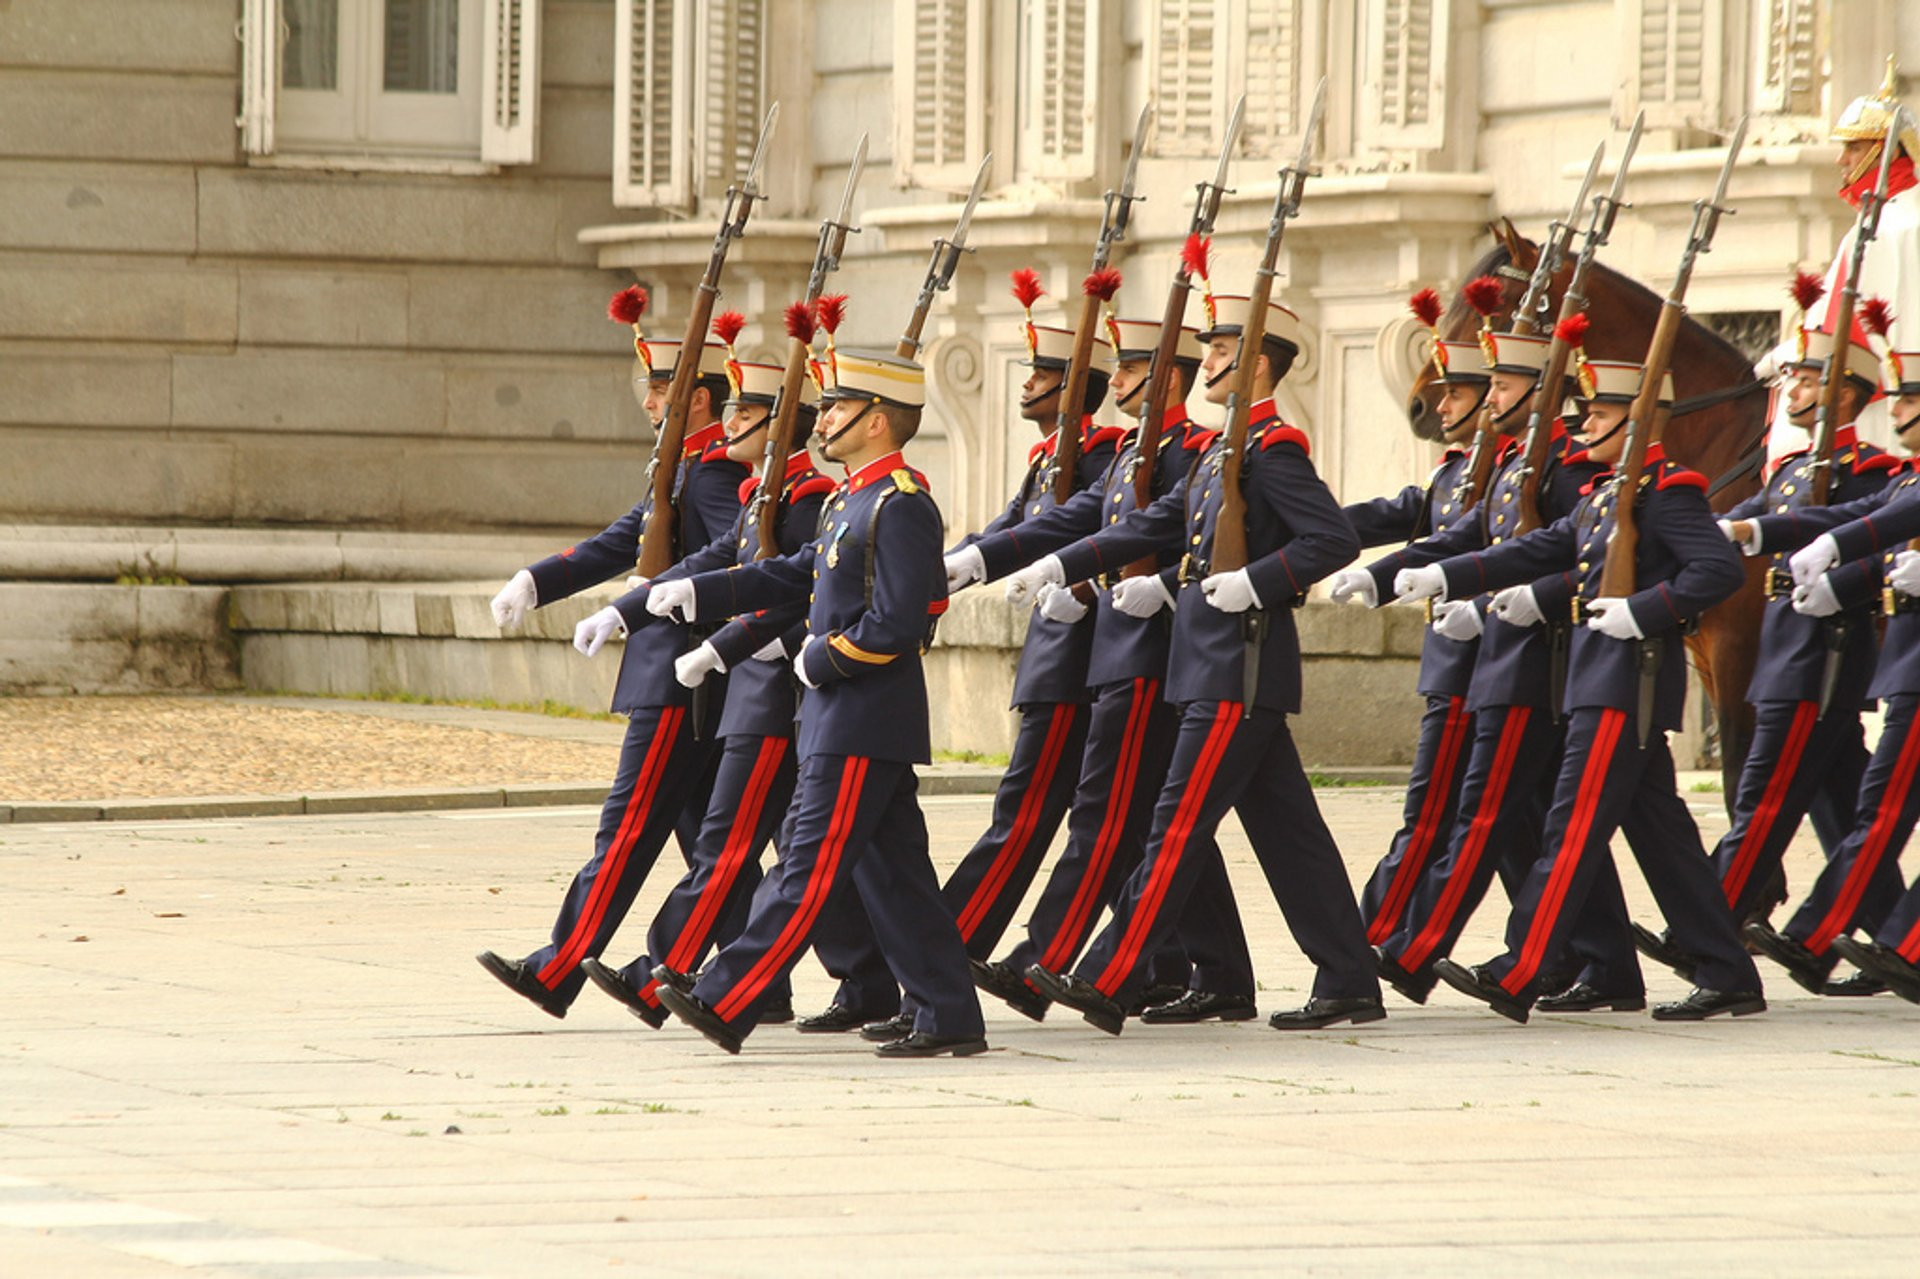 Solemn Changing of the Guard at the Royal Palace in Madrid - Best Season 2020